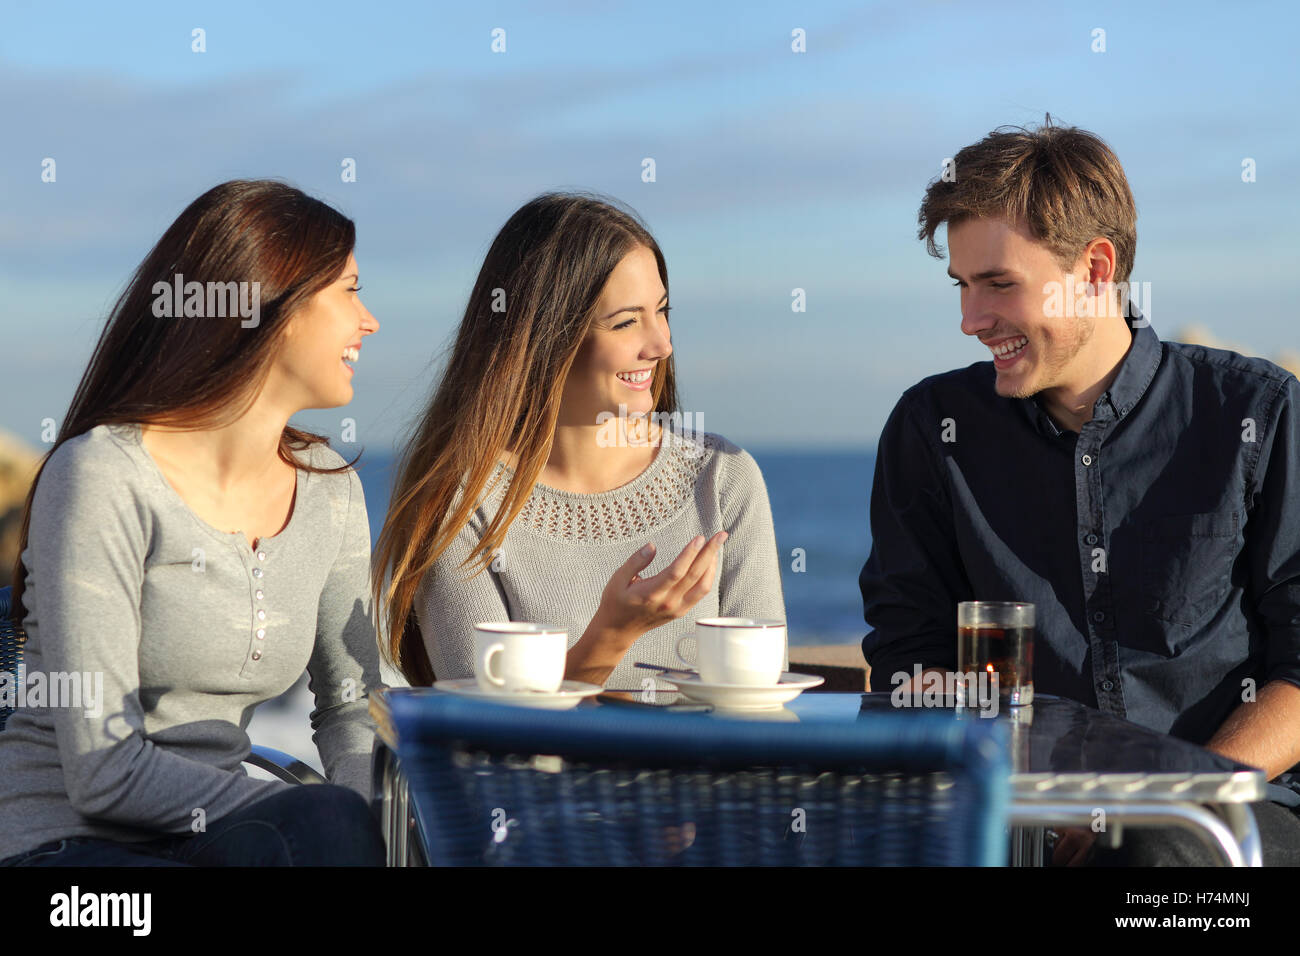 Friends talking in a restaurant on the beach Stock Photo